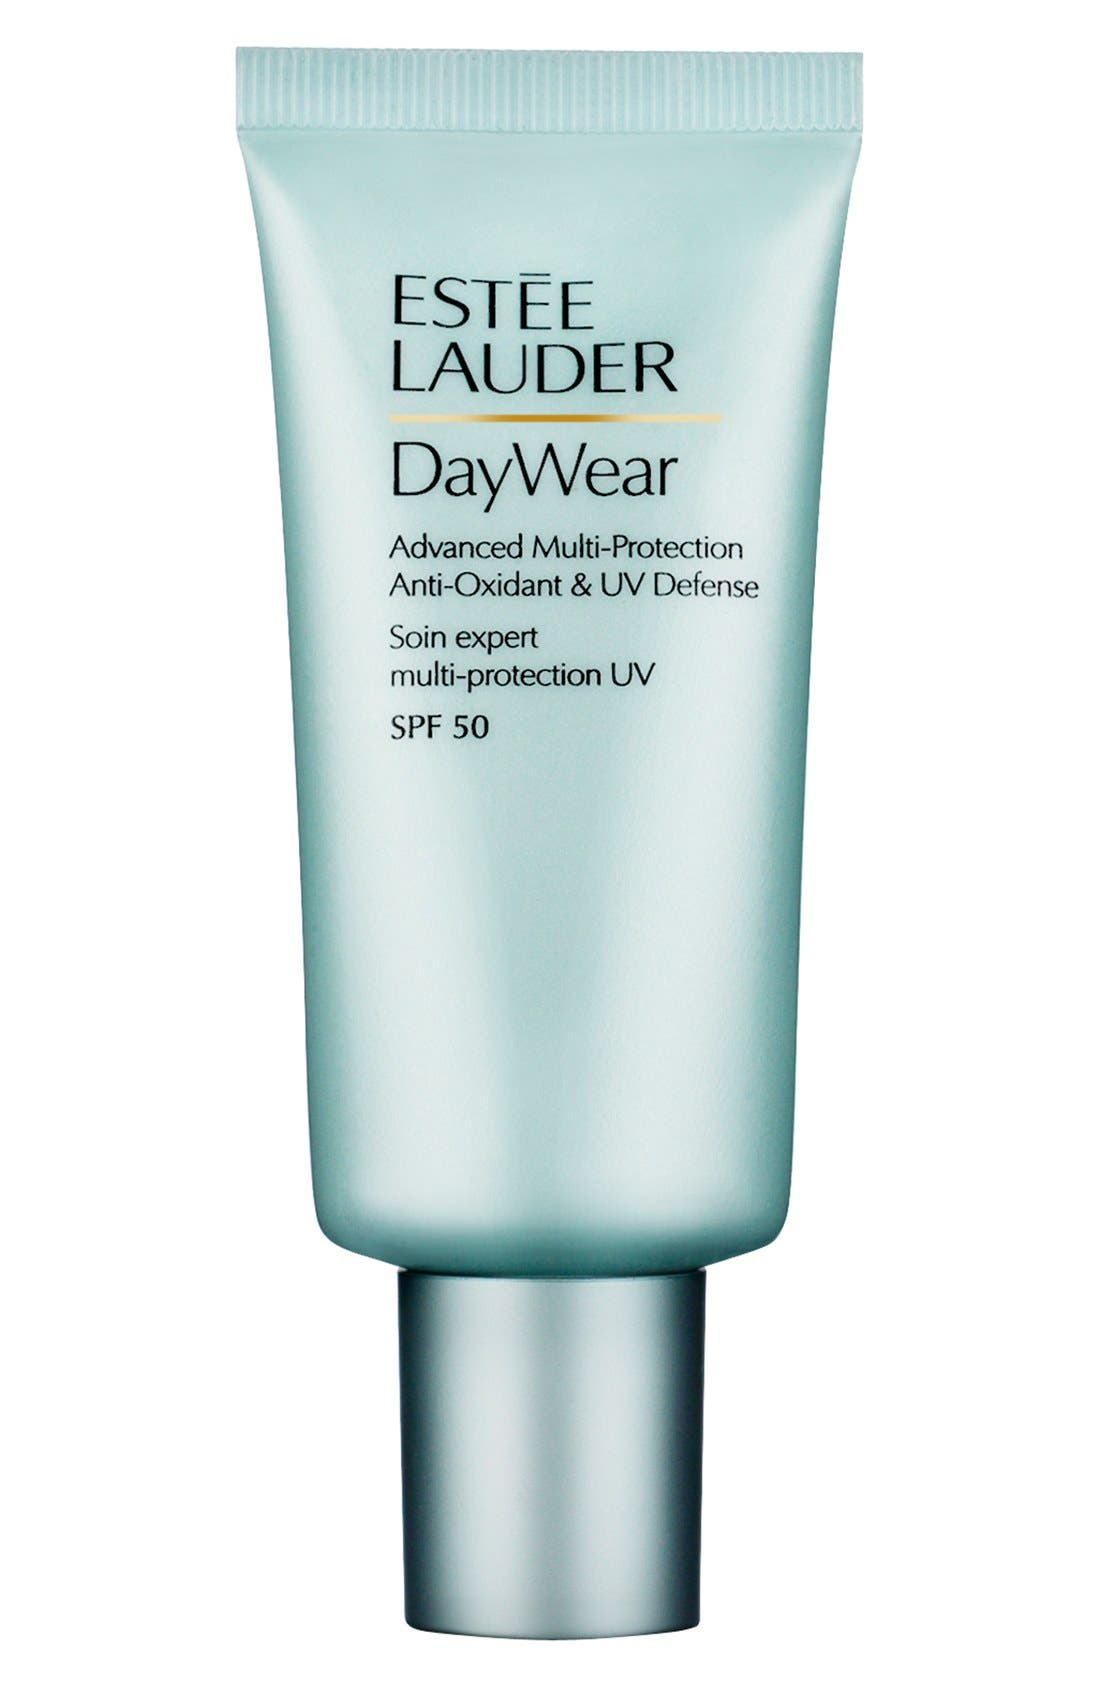 Estée Lauder DayWear Advanced Multi-Protection Anti-Oxidant & UV Defense SPF 50